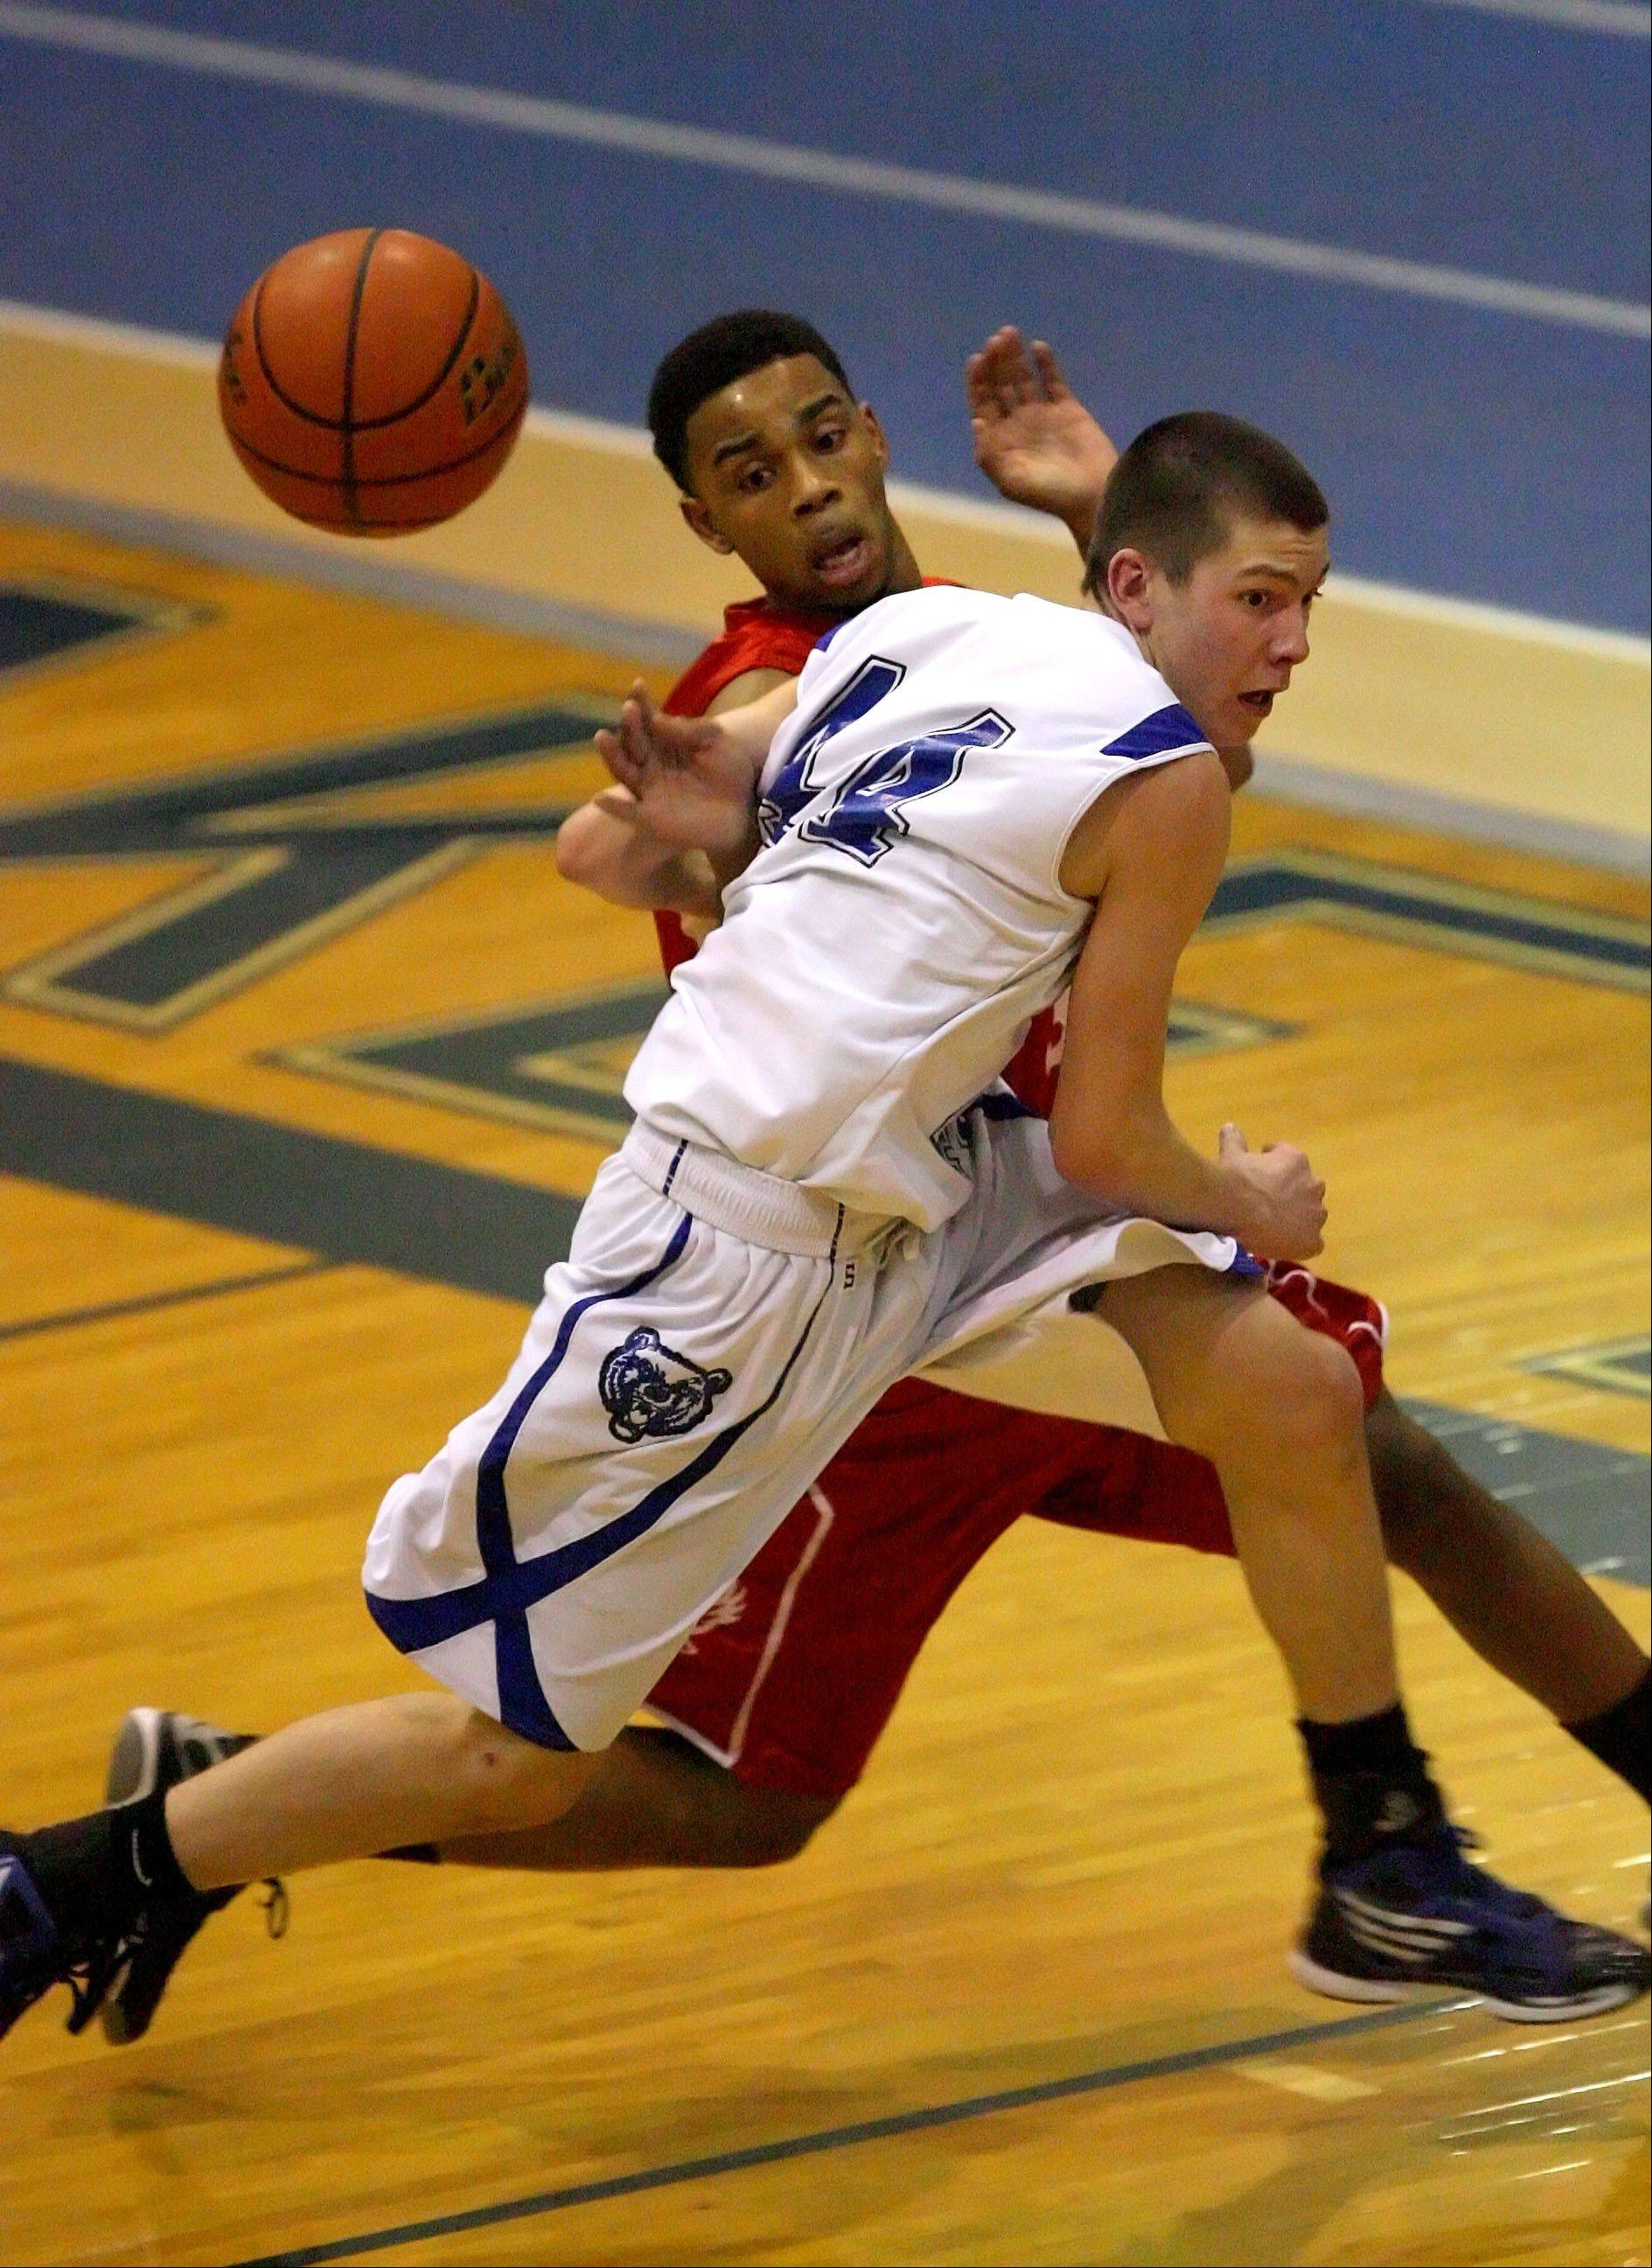 Lake Zurich�s Ryan Roach battles for a loose ball against North Chicago�s Marzhone Bryant last season. Roach is among the scoring leaders for the Bears this year.